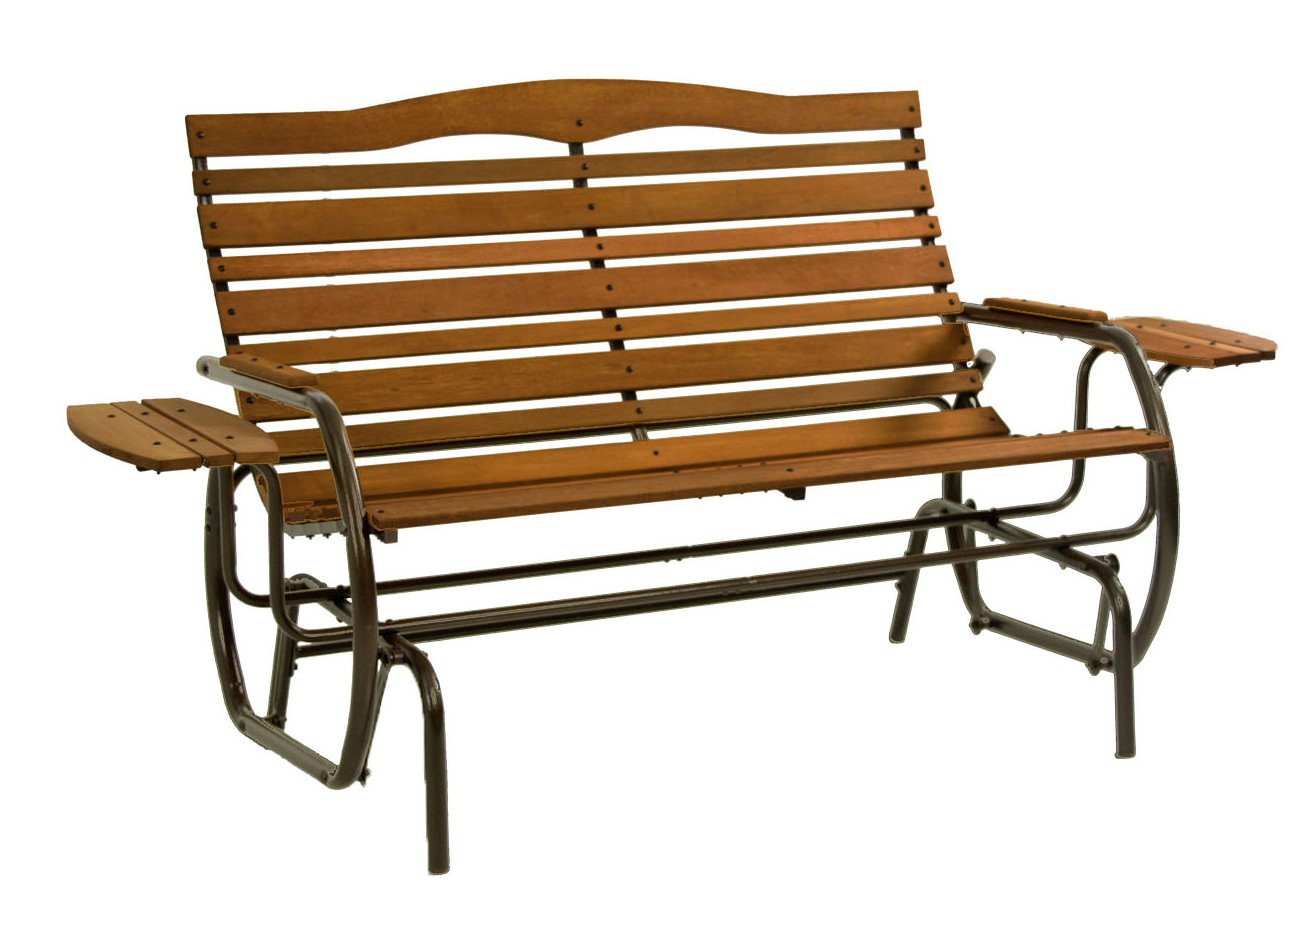 Jack Post CG-12Z Country Garden Double Glider with Trays, Bronze by Jack Post